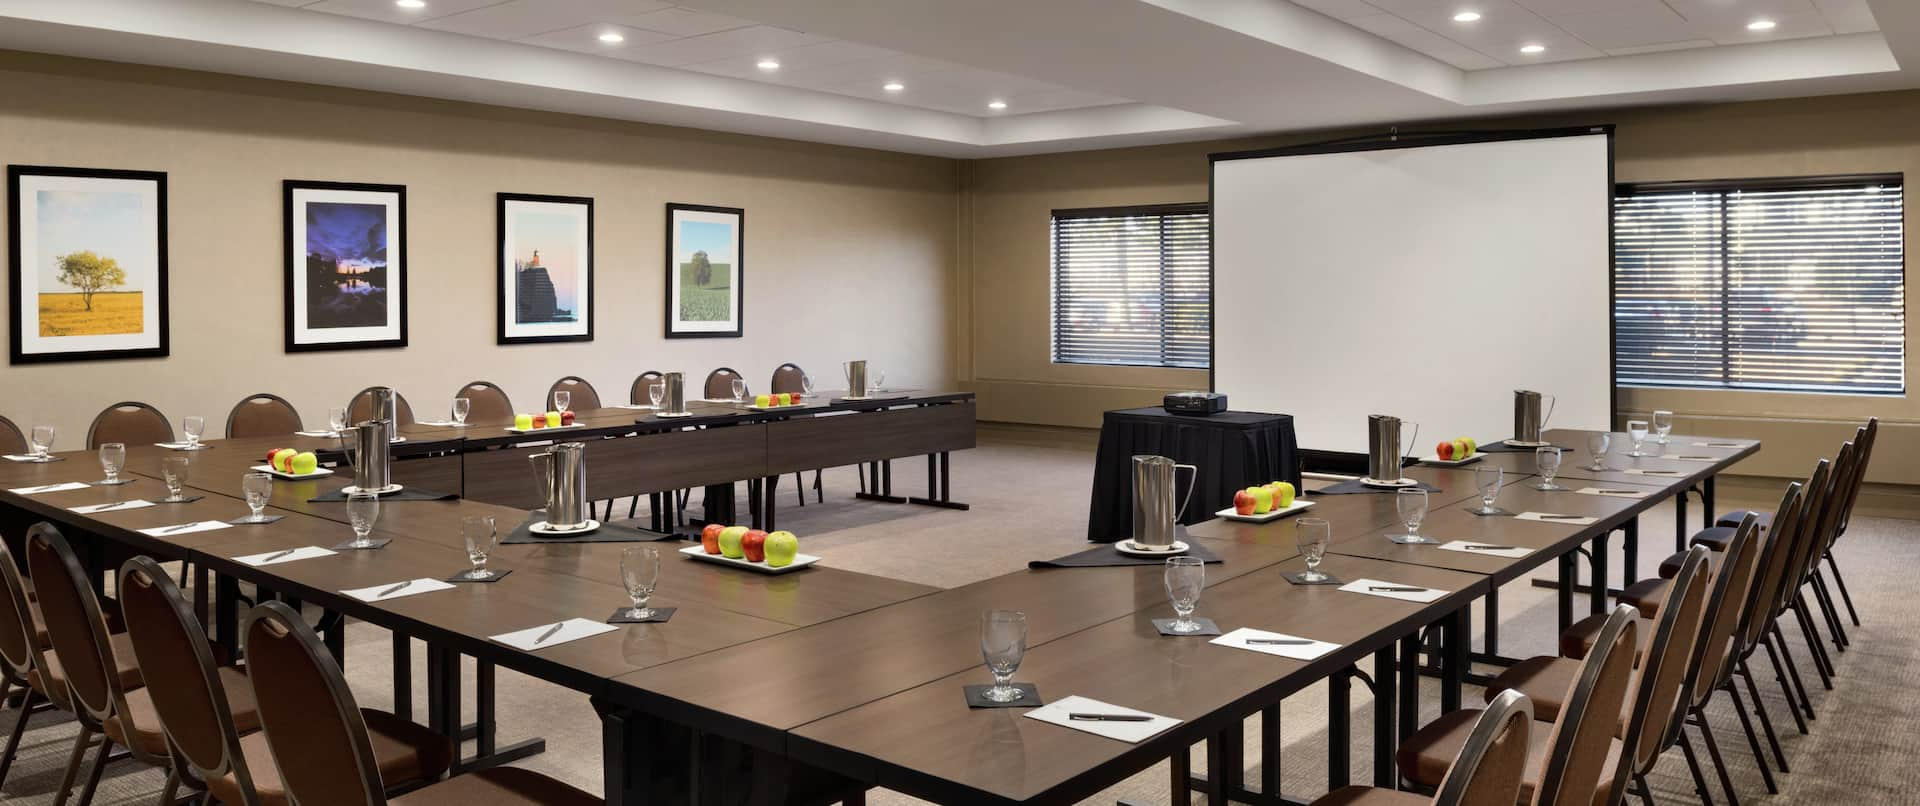 U-Shaped Meeting Room Set Up